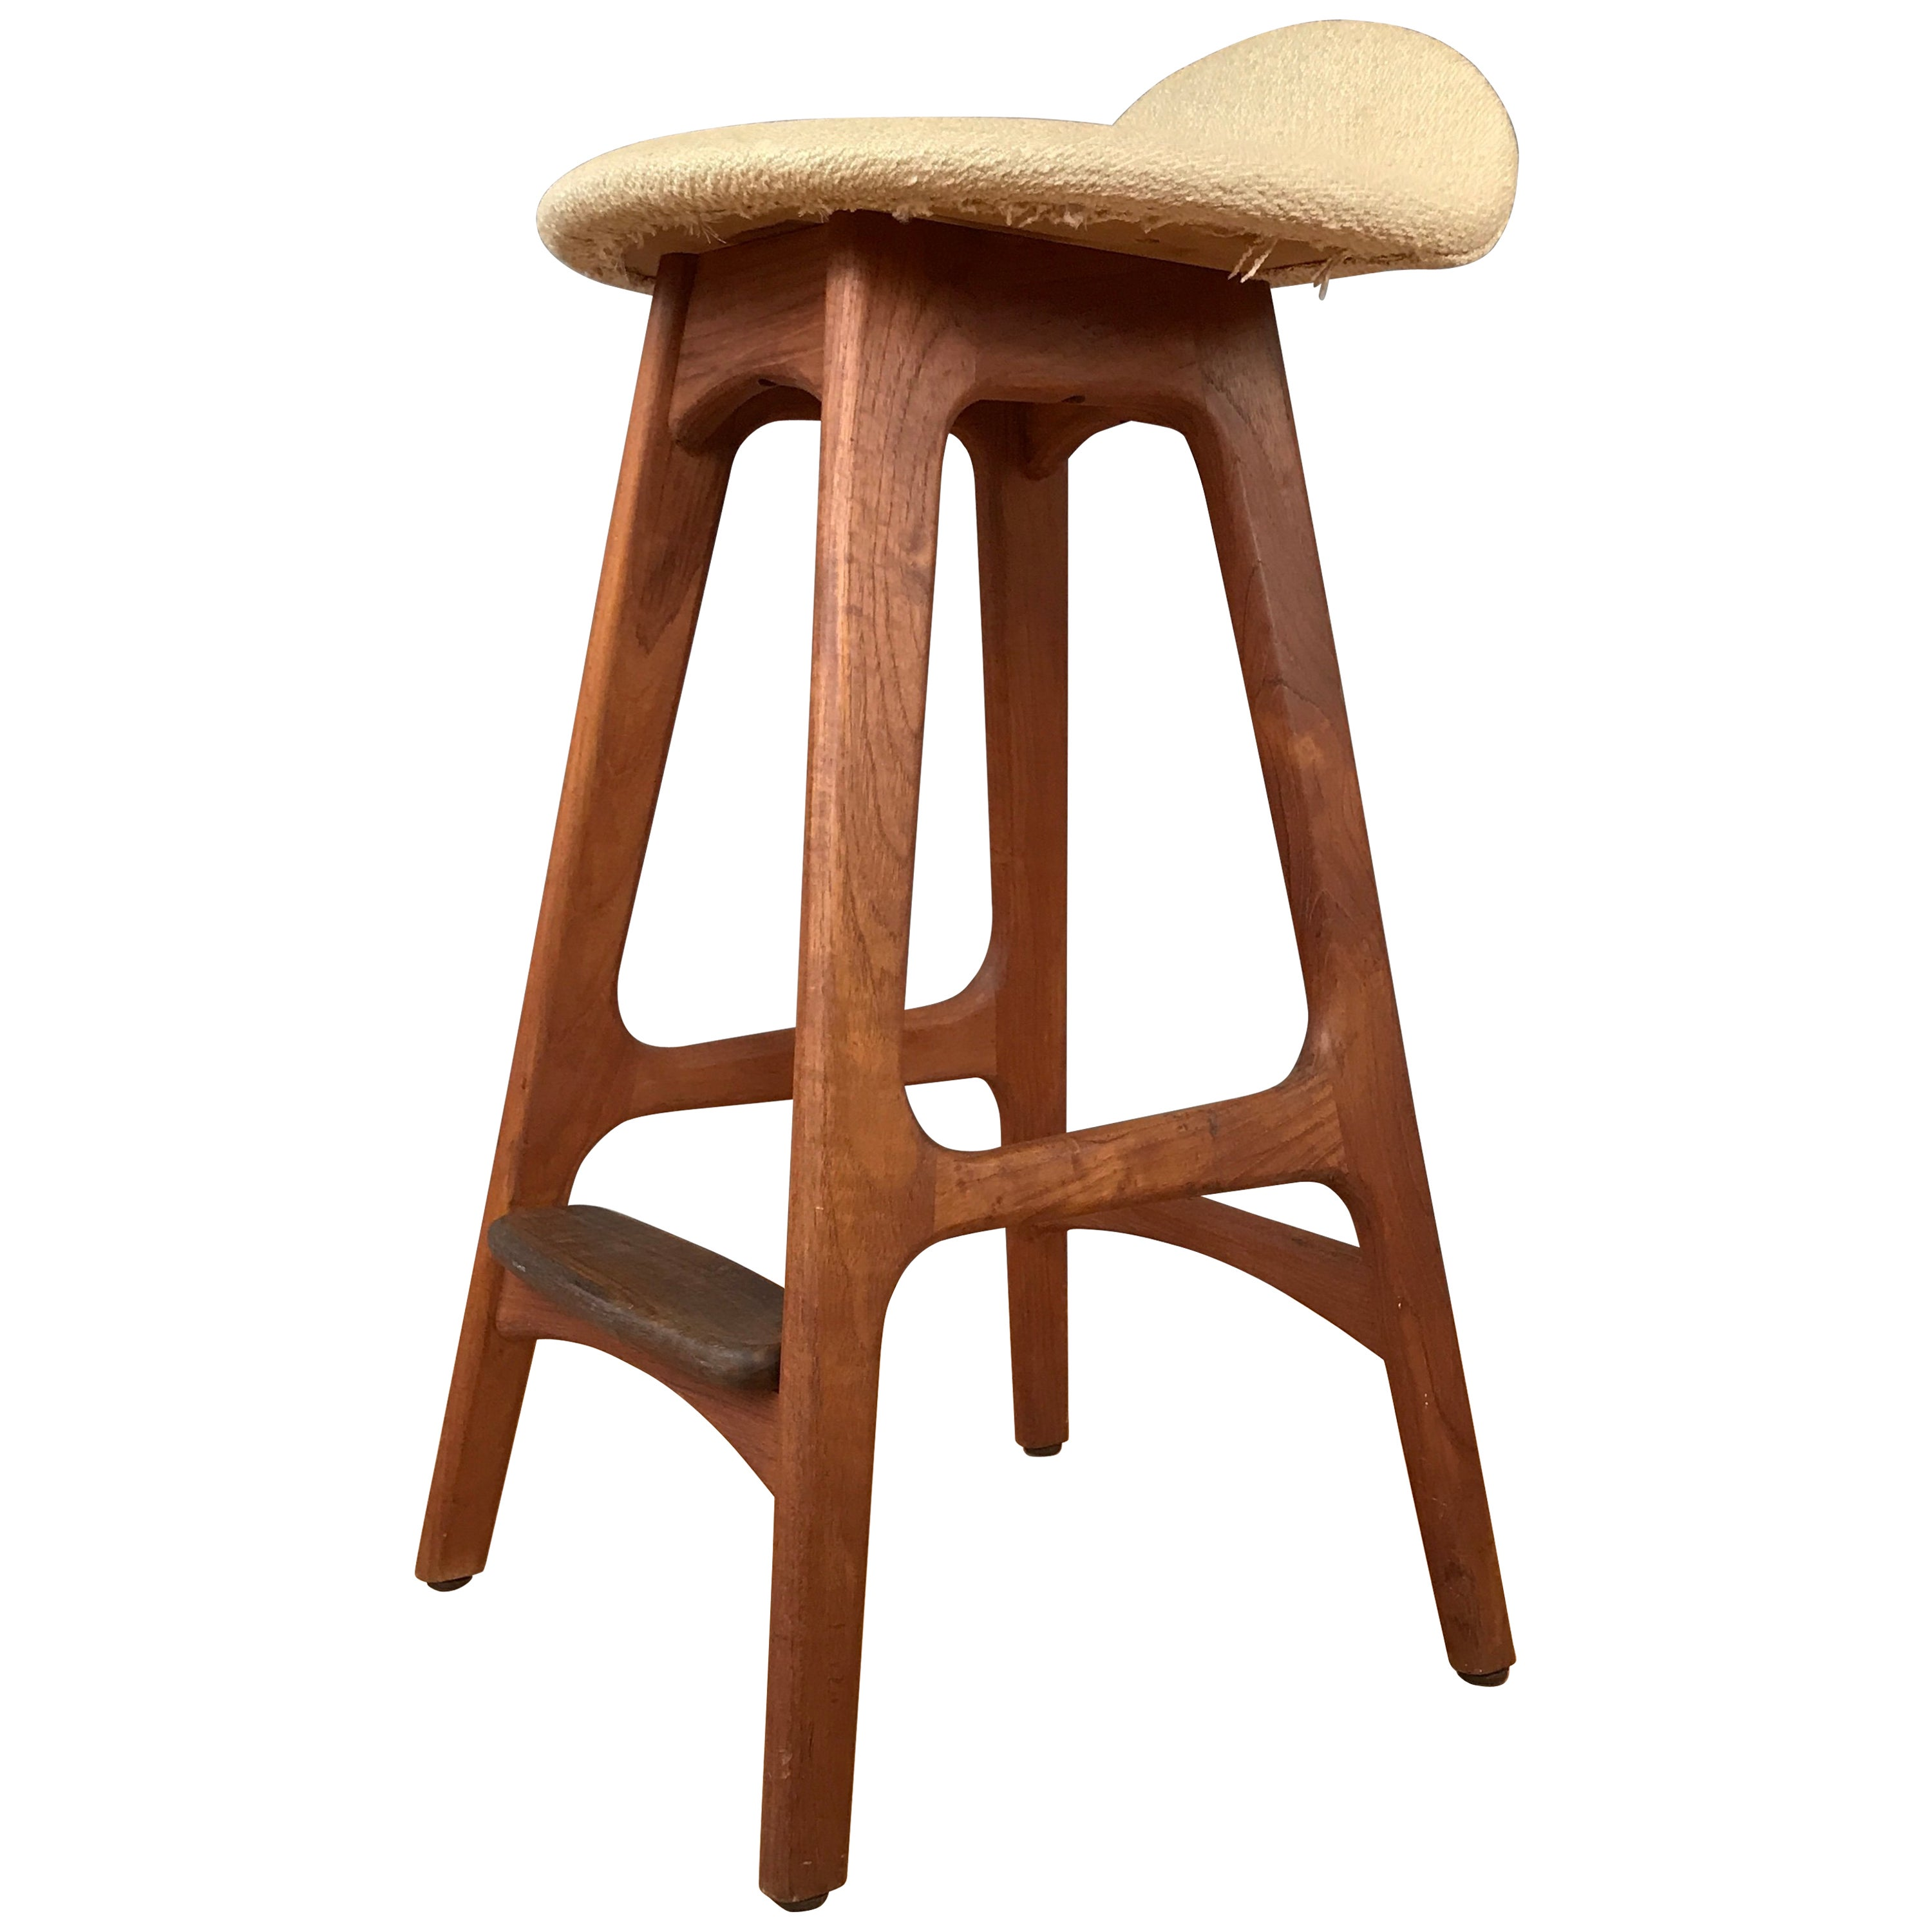 Counter Height Chairs With Arms Teak Counter Height Stool Designed By Erick Buck